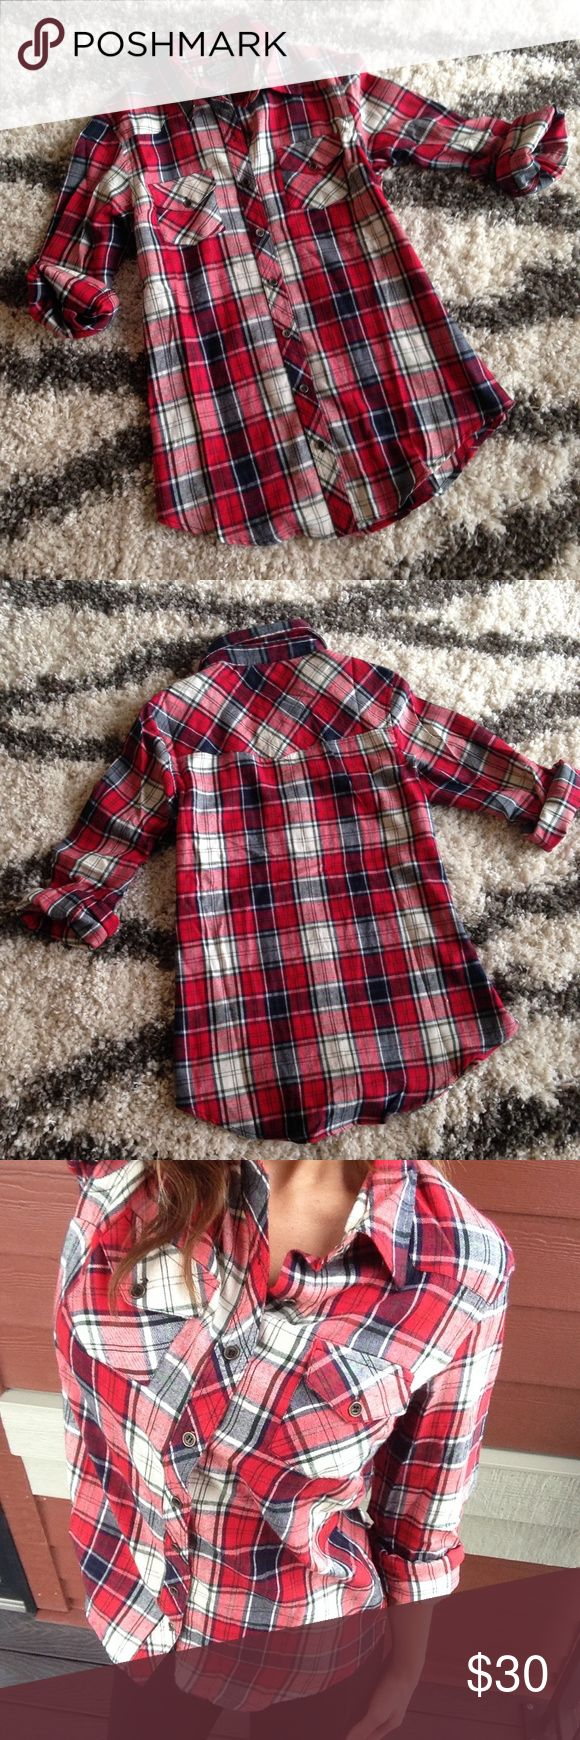 NWT Plaid Red Navy Blue Button Up Shirt Size S So cute! Boutique Tops Button Down Shirts